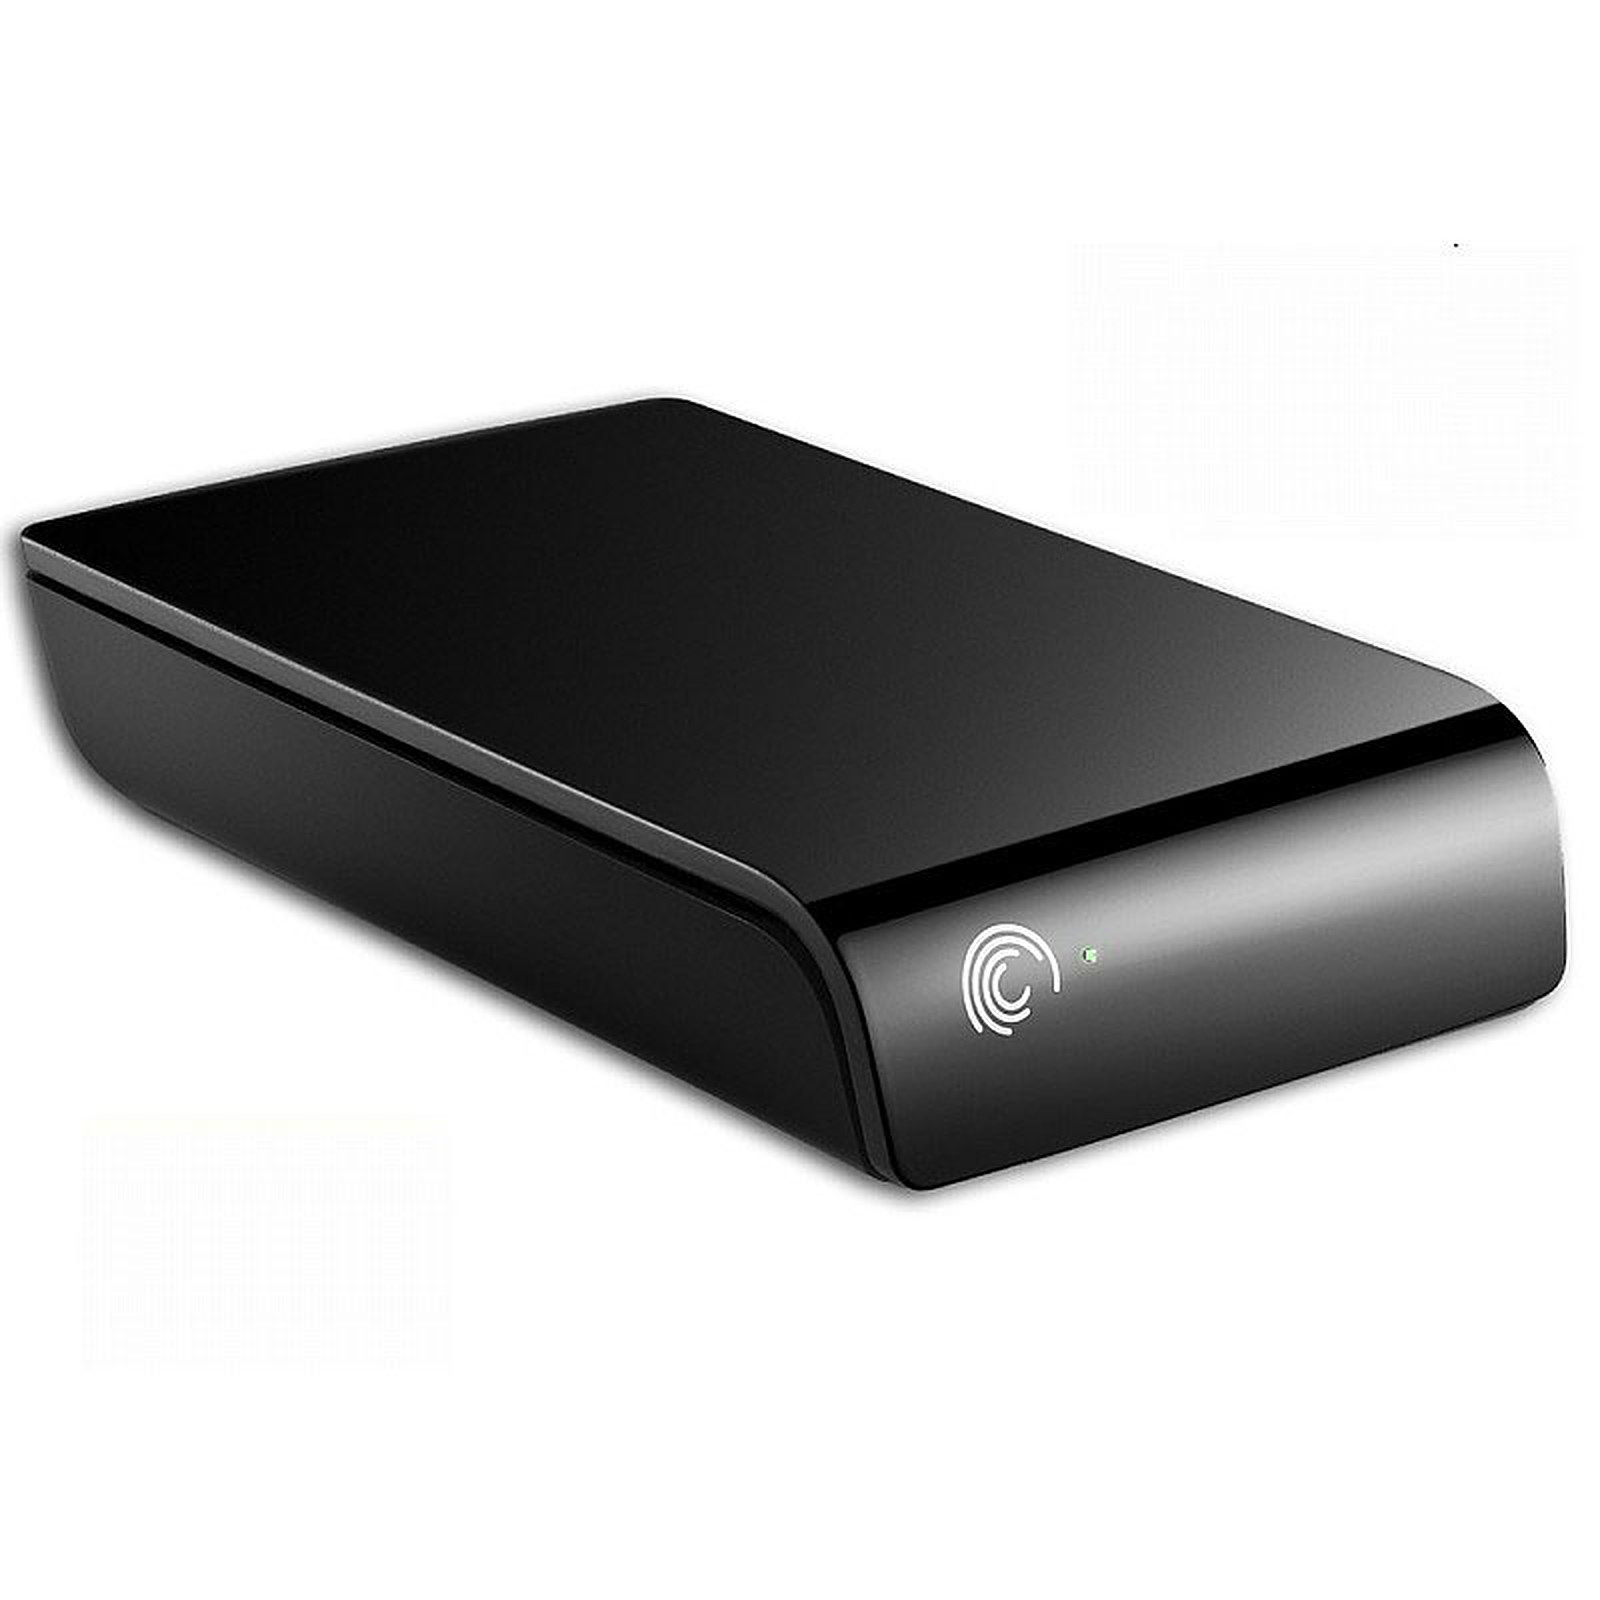 Seagate Expansion 3 To (USB 2.0)